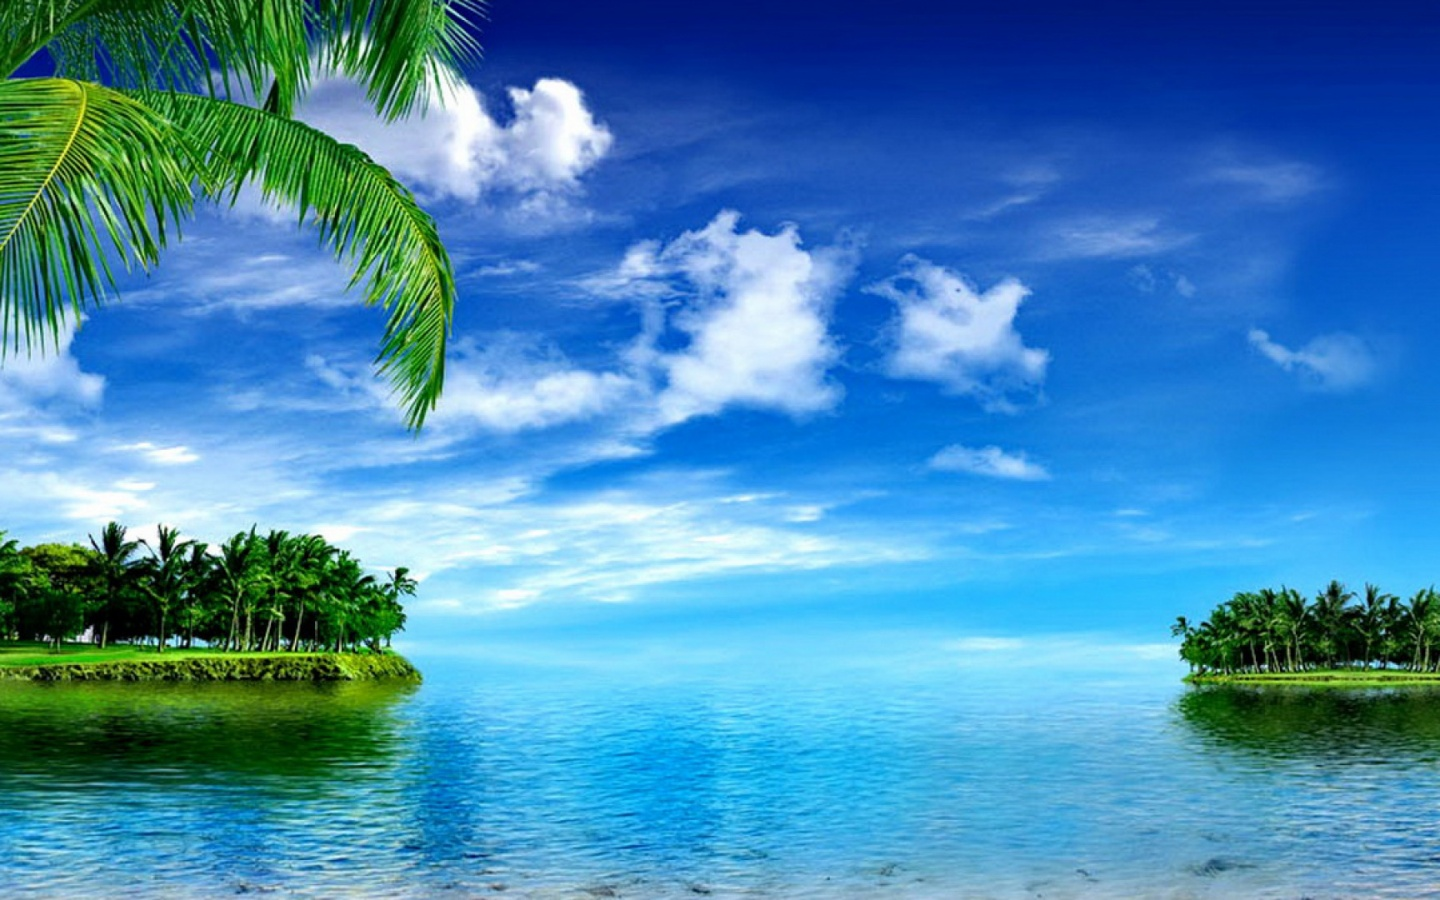 1440x900 Floating Palms